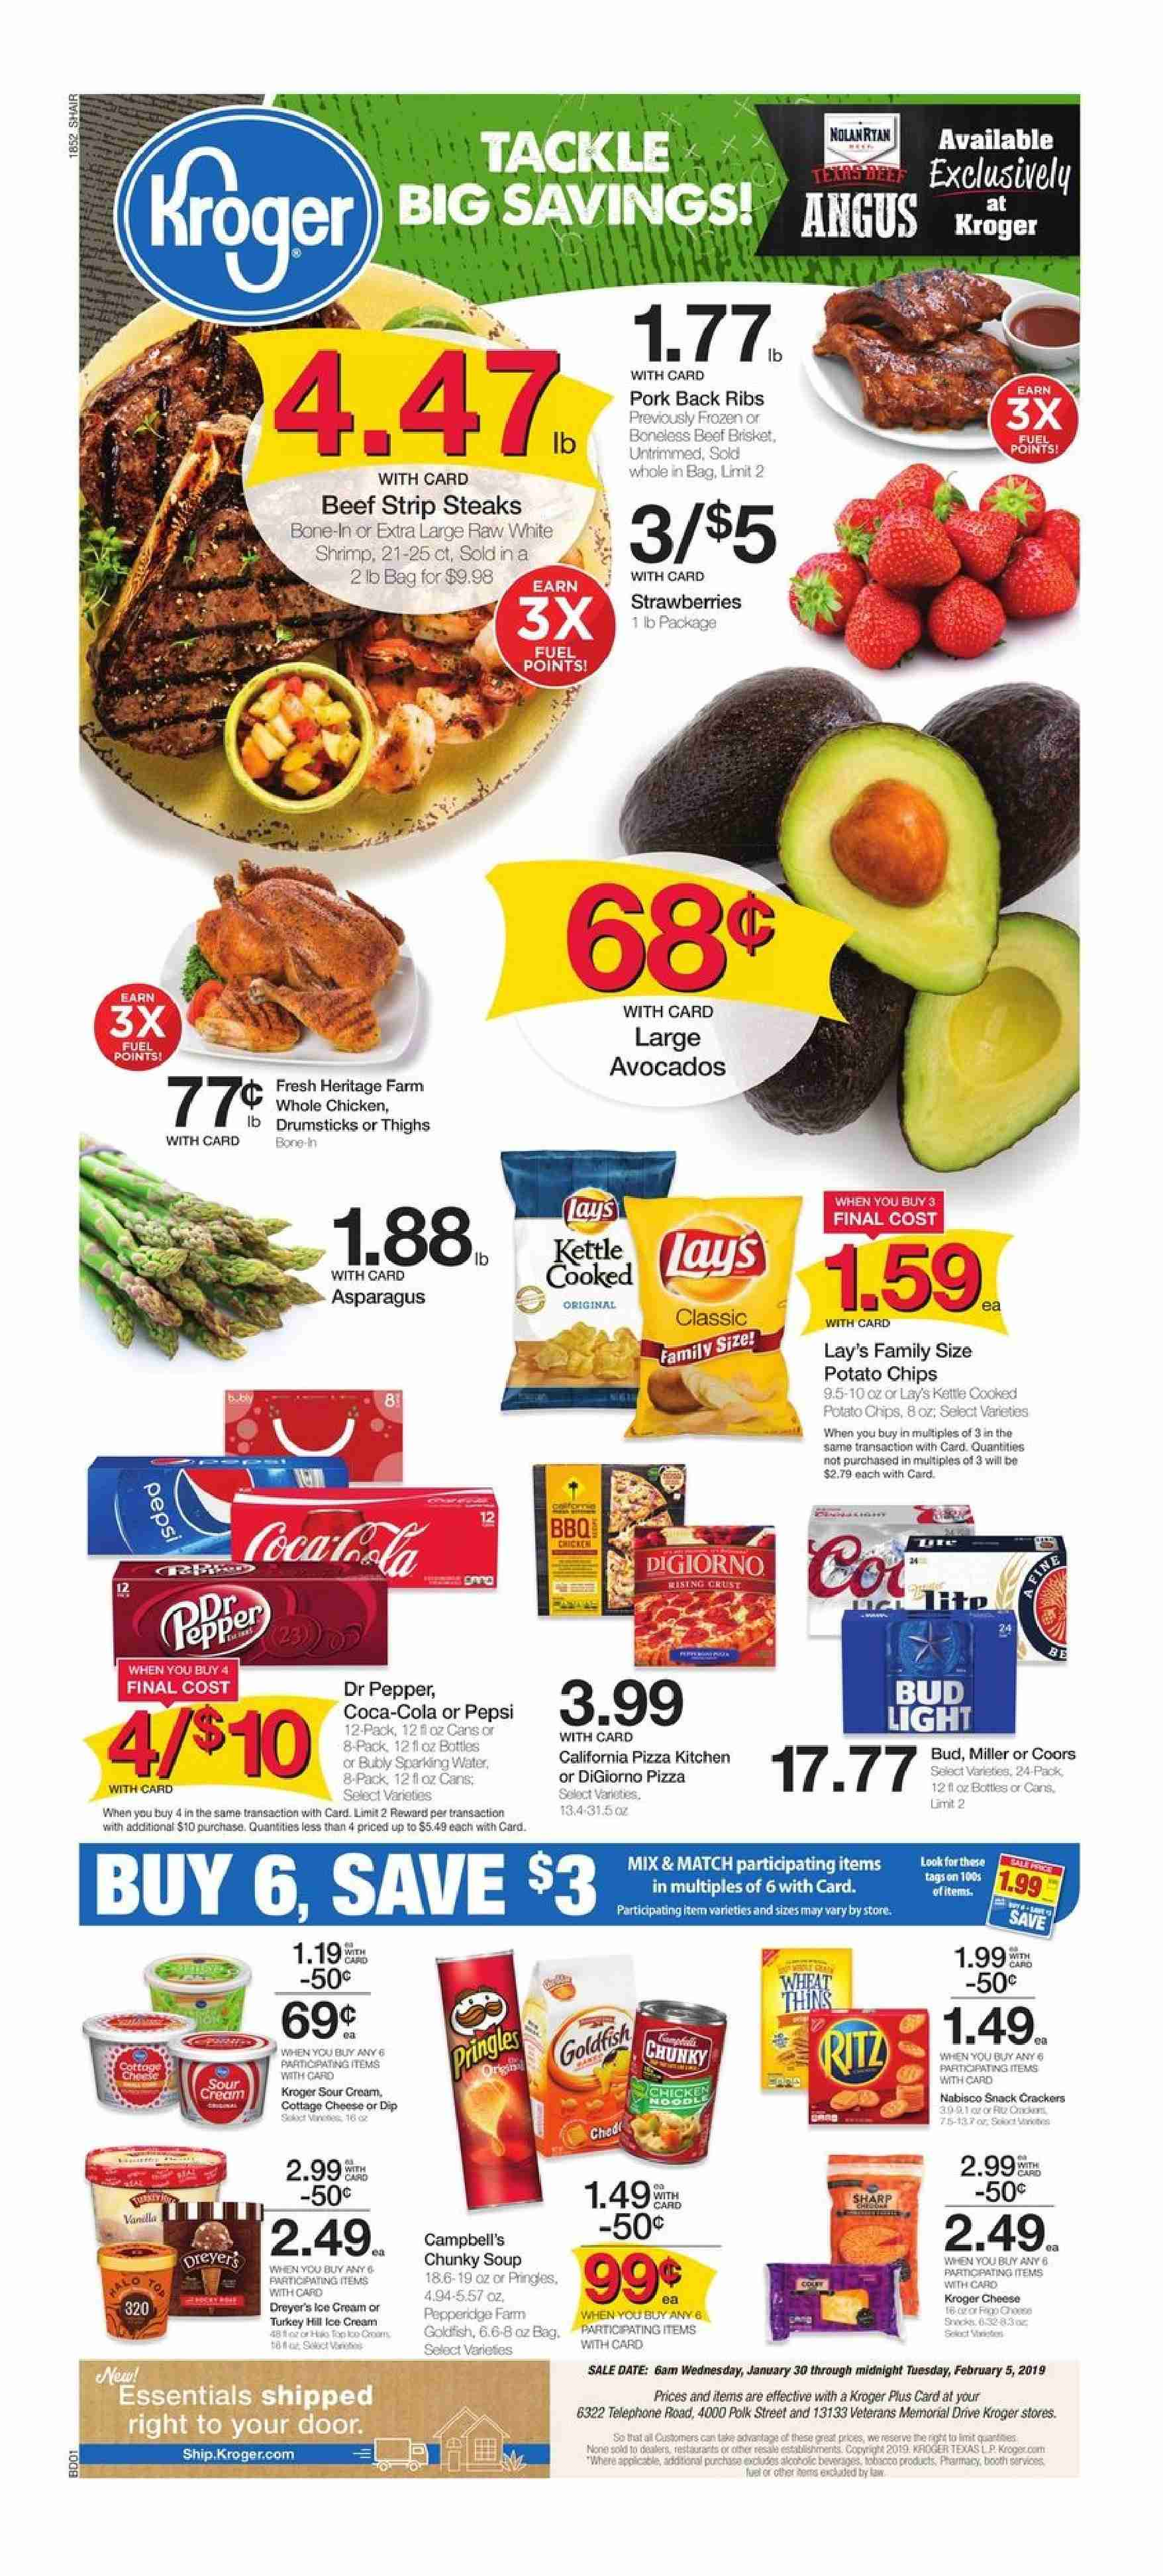 Kroger Flyer - 01.30.2019 - 02.05.2019 - Sales products - avocado, beef meat, campbell's, coca-cola, cottage cheese, crackers, door, frozen, fuel, shrimp, sour cream, turkey, whole chicken, ice cream, pizza, polk, pork meat, potato chips, chicken, pepsi, chips, cheese, soup, pepper, bud light, lay's, ribs. Page 1.